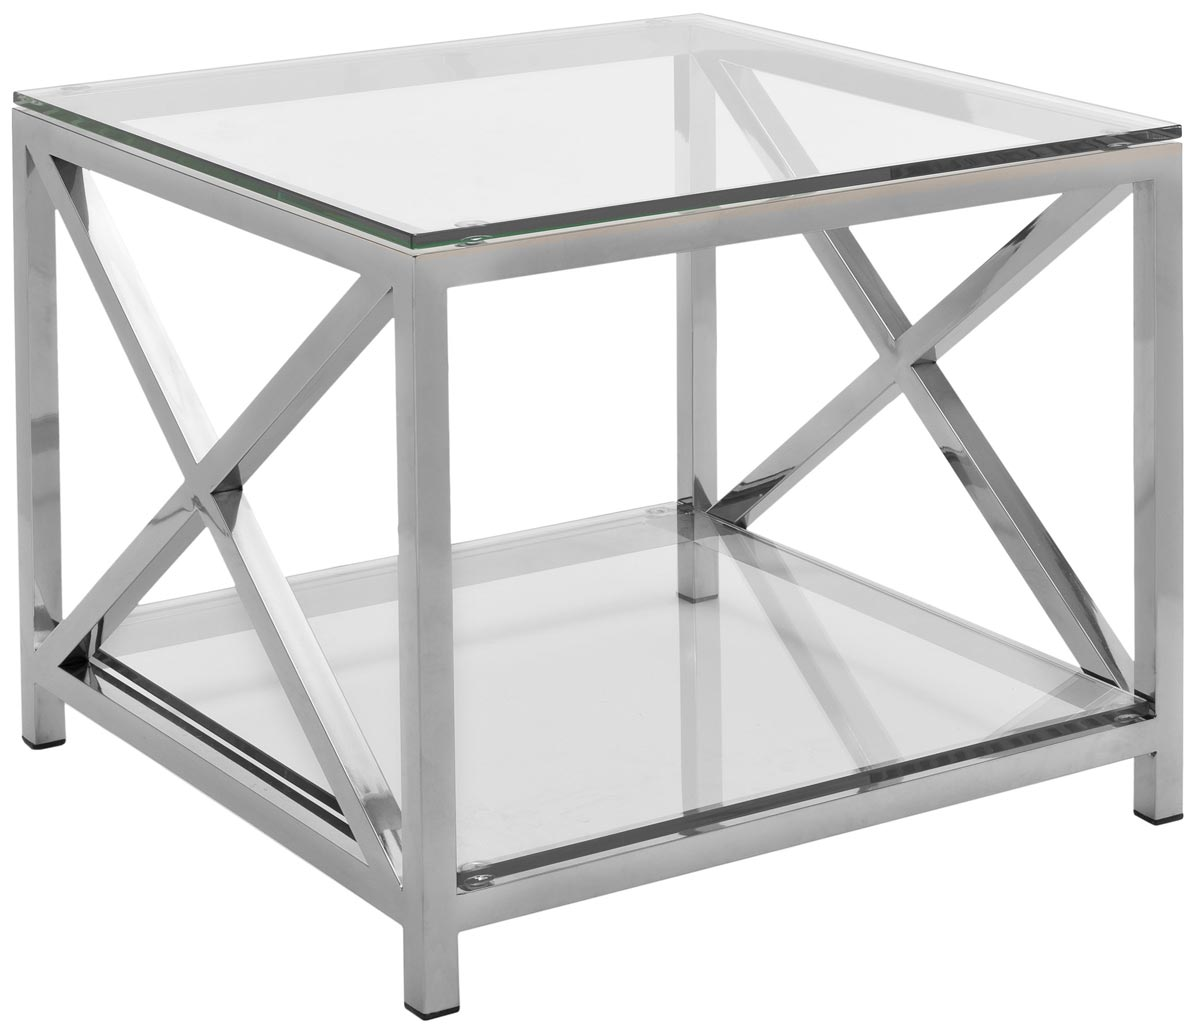 stainless steel chrome glass accent table safavieh square round farmhouse dining dorm sets oval garden grey gloss nest tables used west elm lucite bedside marble room set rattan